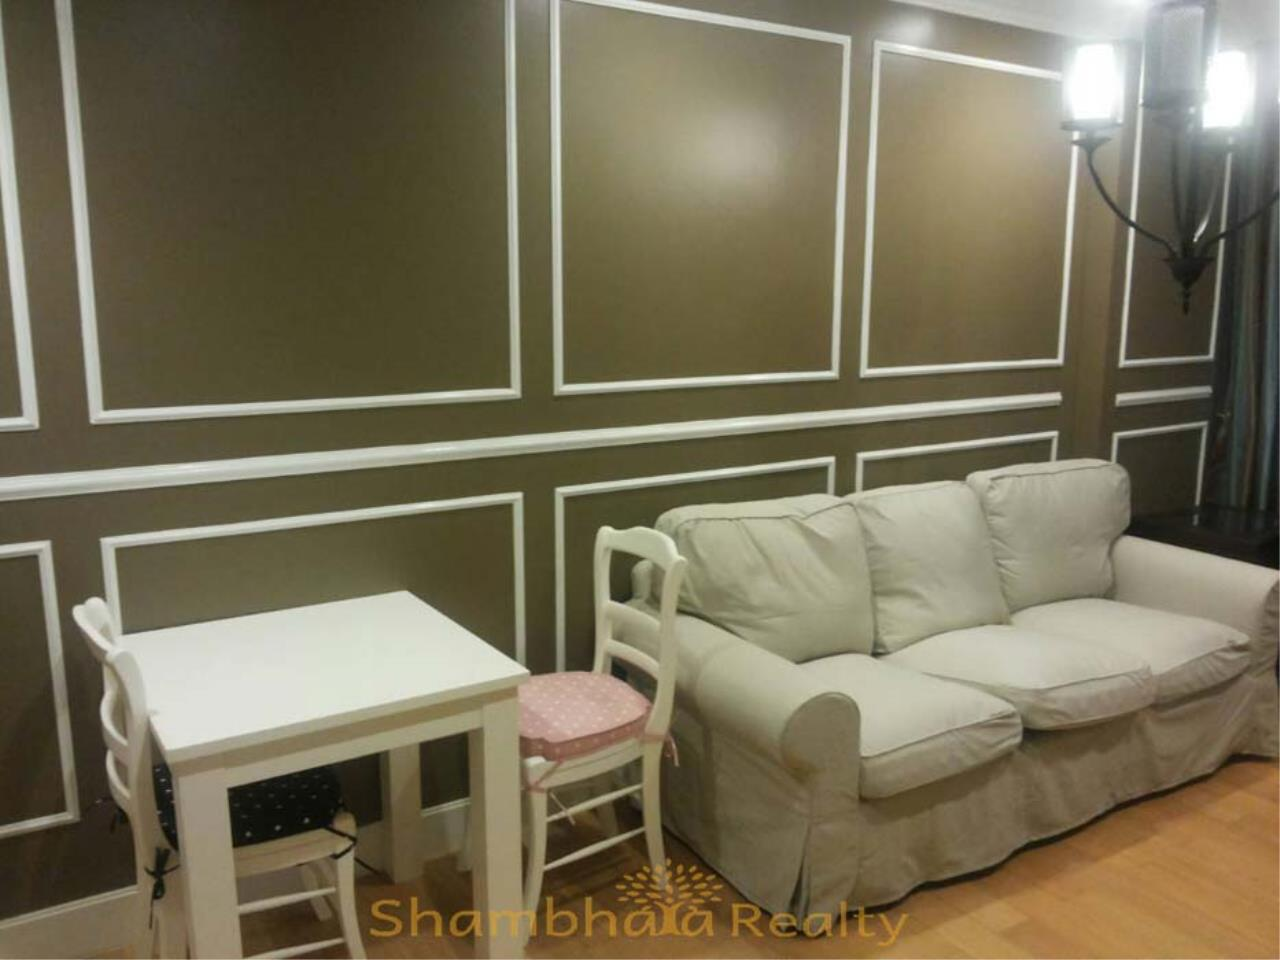 Shambhala Realty Agency's Collezio Condo Condominium for Rent in Sathon 8 road or Silom 3 road 2